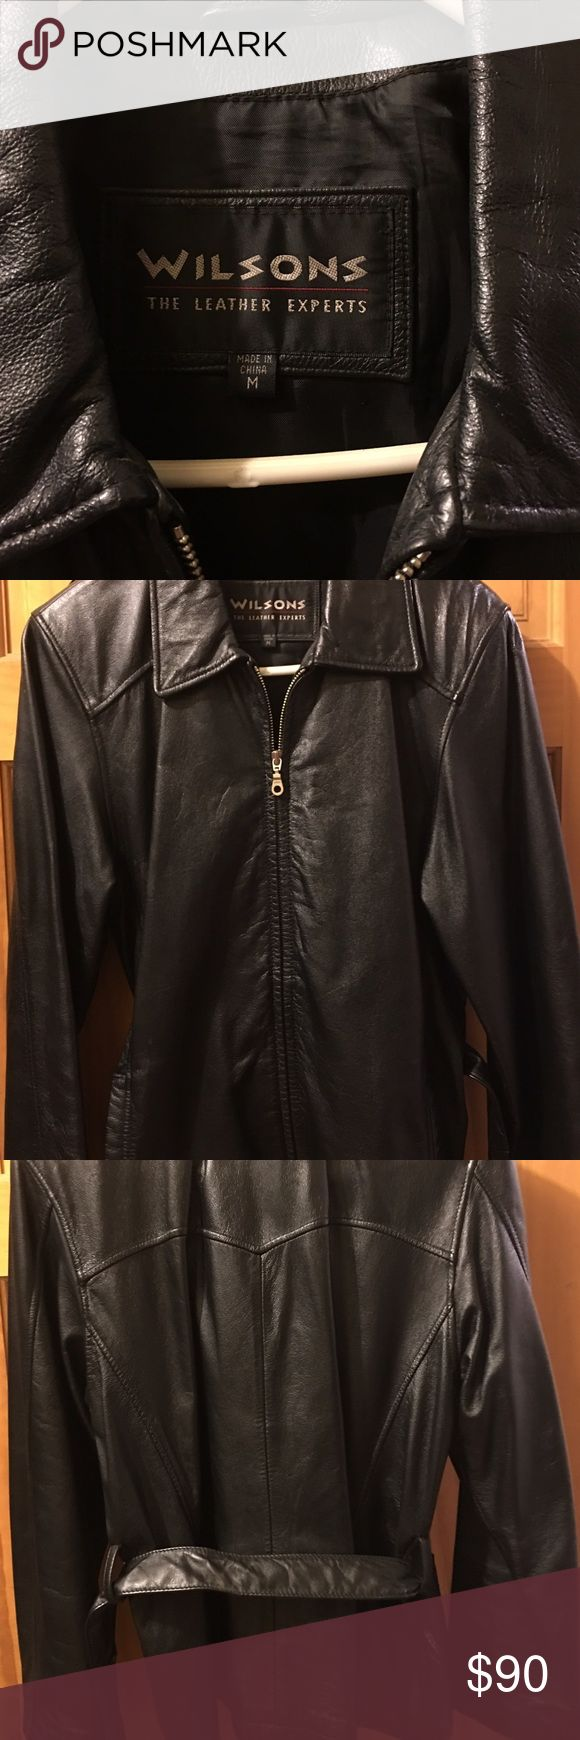 Wilsons black leather jacket Size M Excellent condition black ladies leather jacket. Zips up front and ties around waist. Wilsons Leather Jackets & Coats